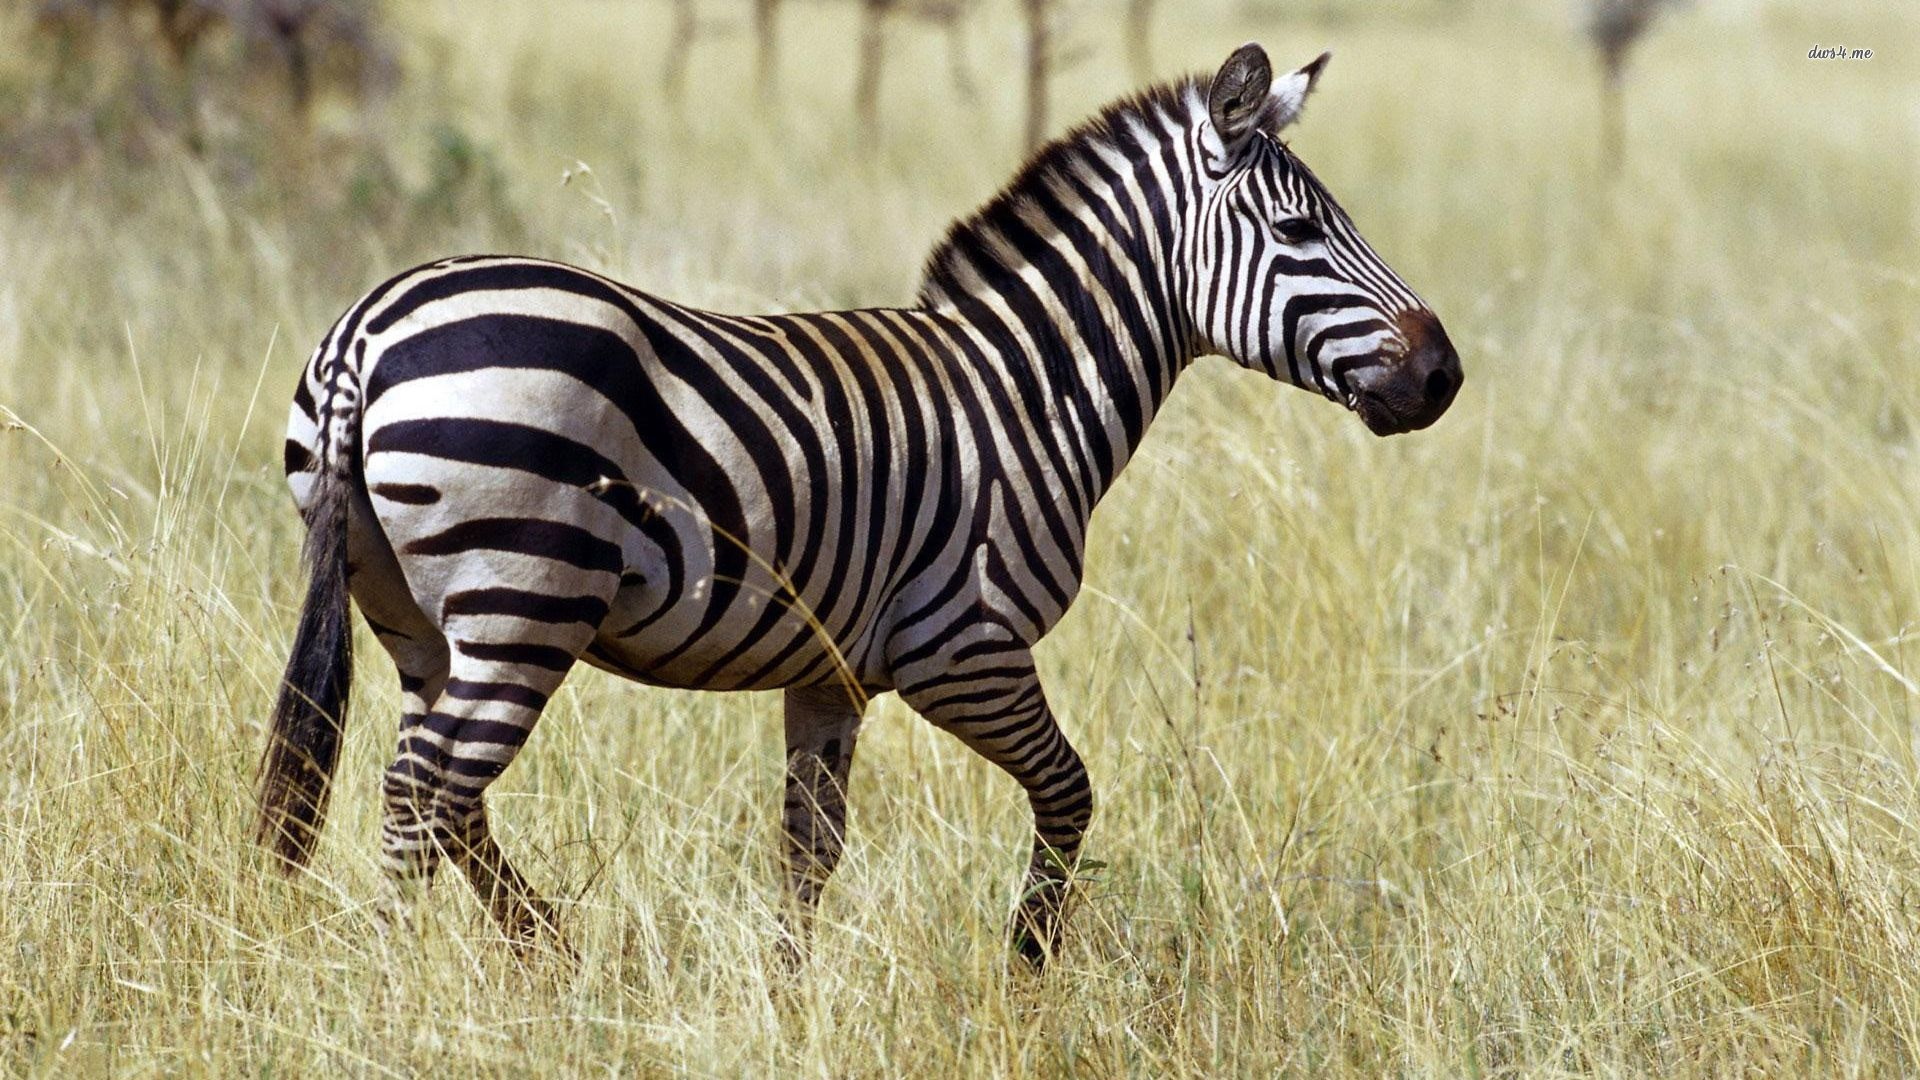 zebra wallpaper themes photography 1080p #10923 wallpaper